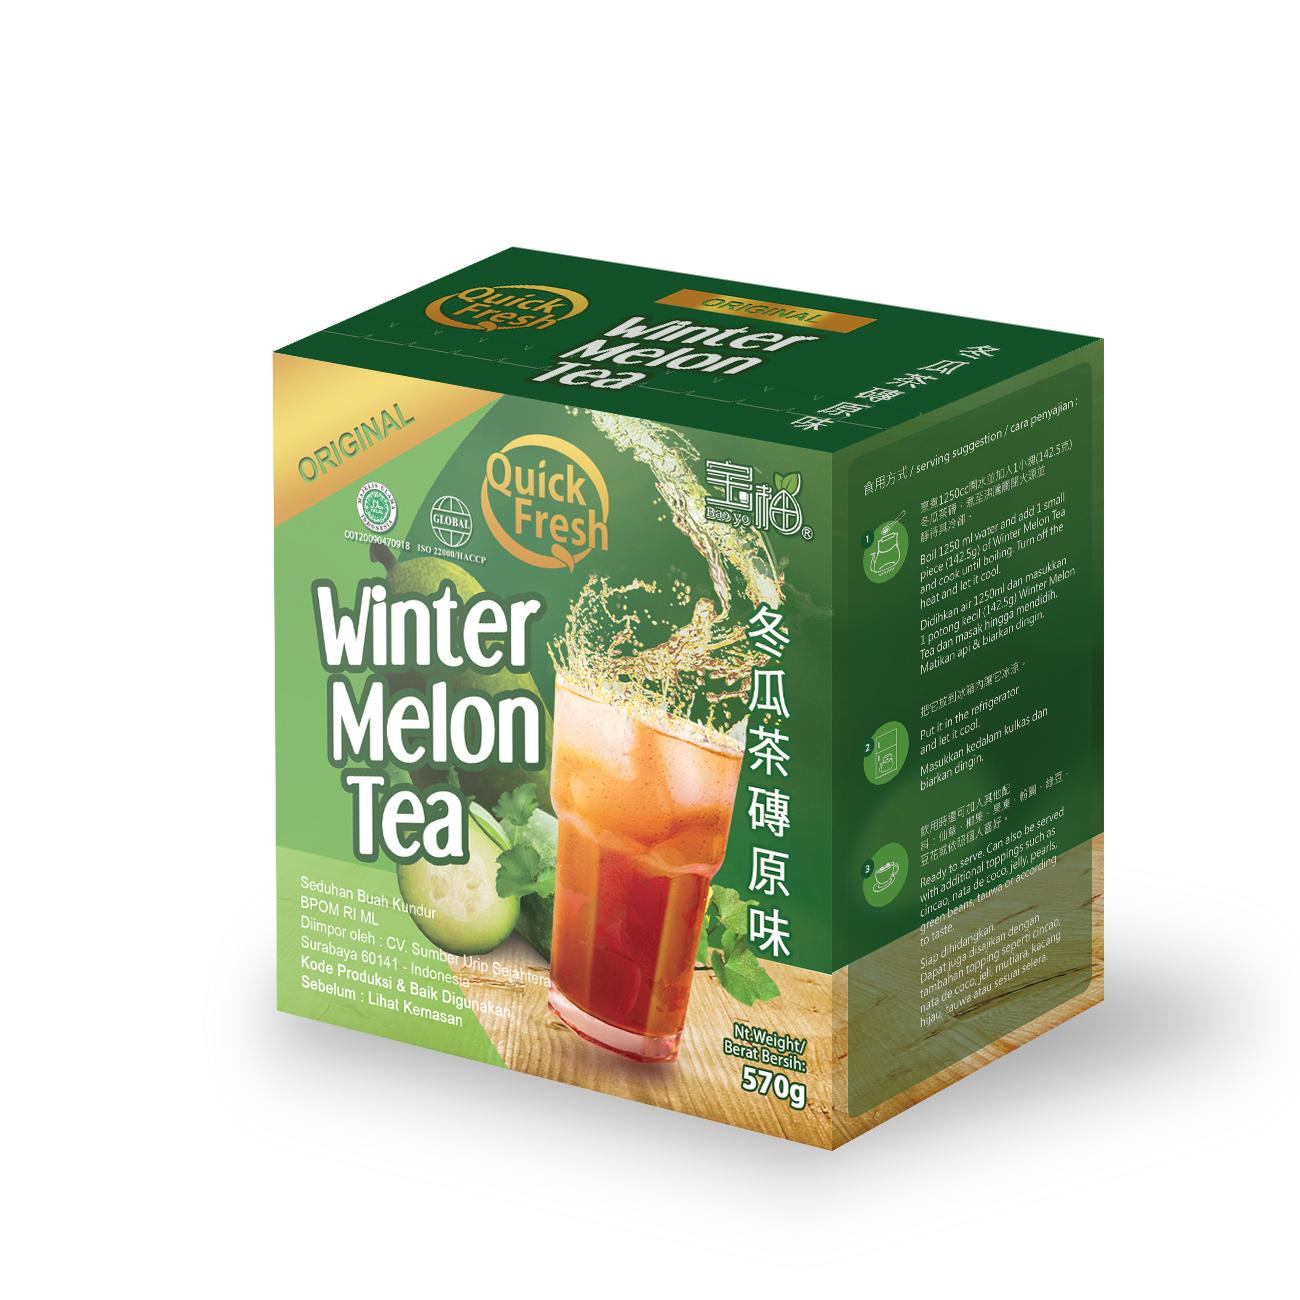 Quick Fresh Winter Melon Tea Original Box 570g Inter Buana Mandiri